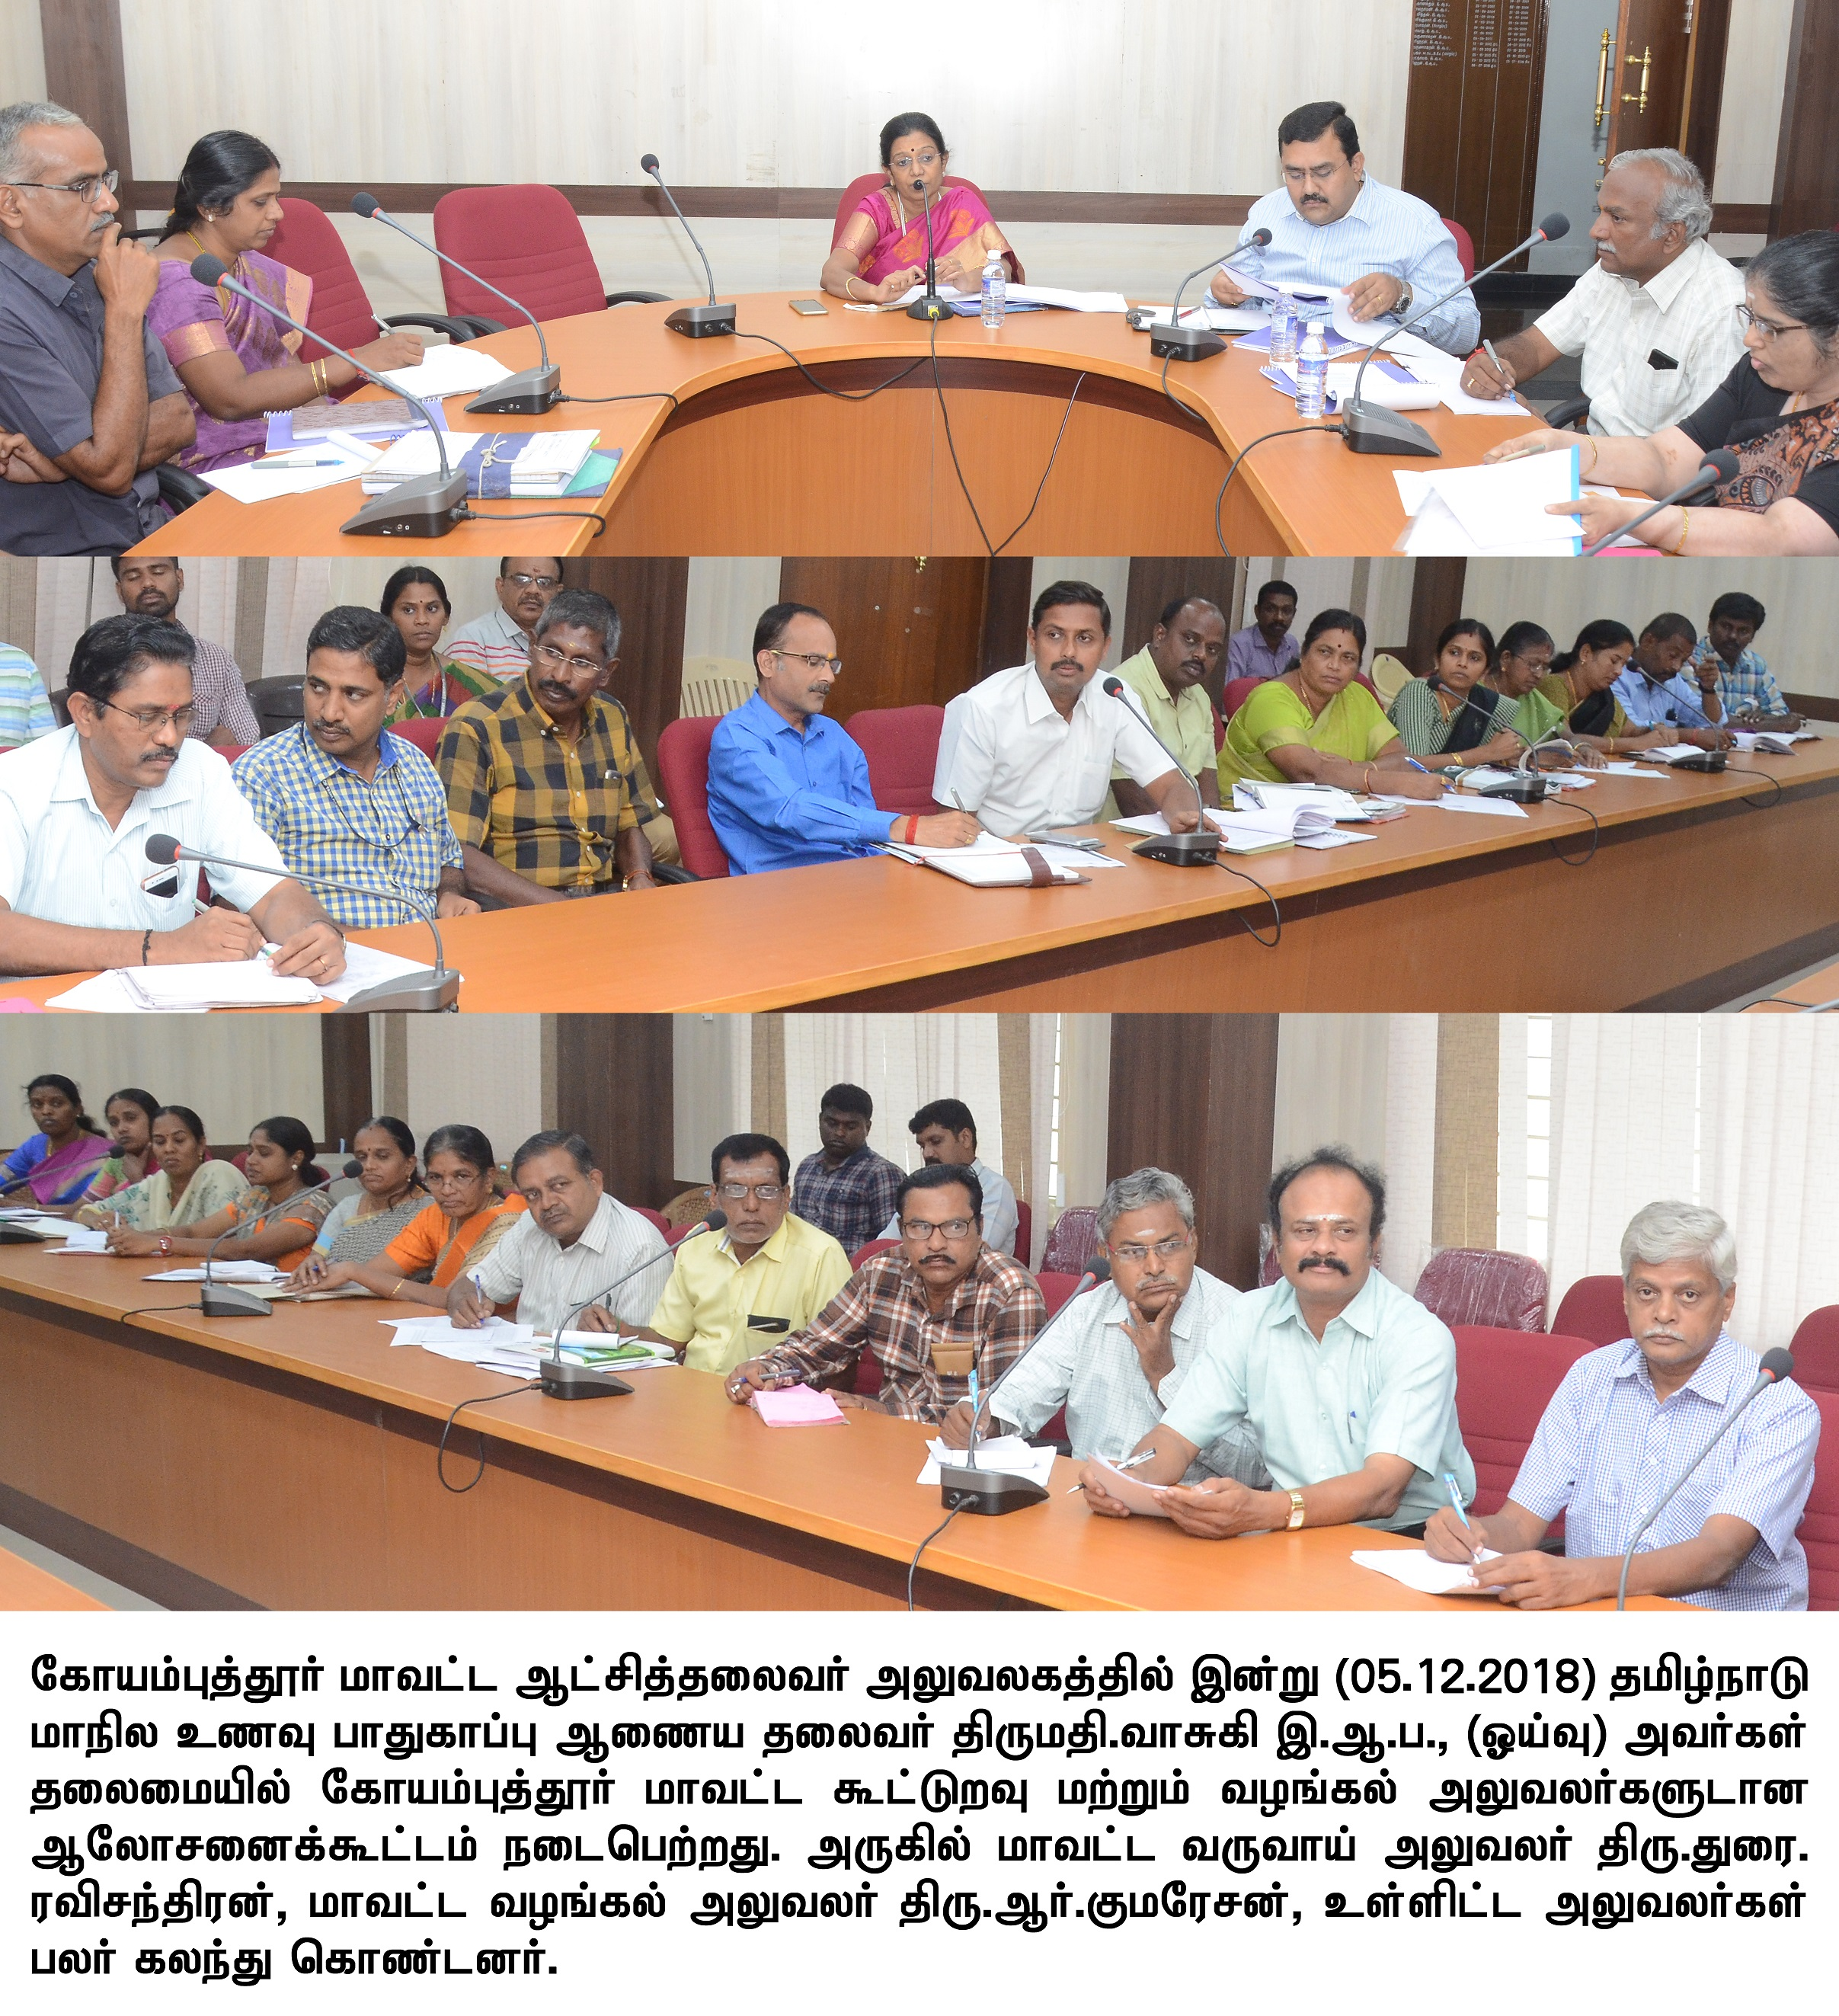 Food Safety Commissioner Tamil Nadu conducted review meeting